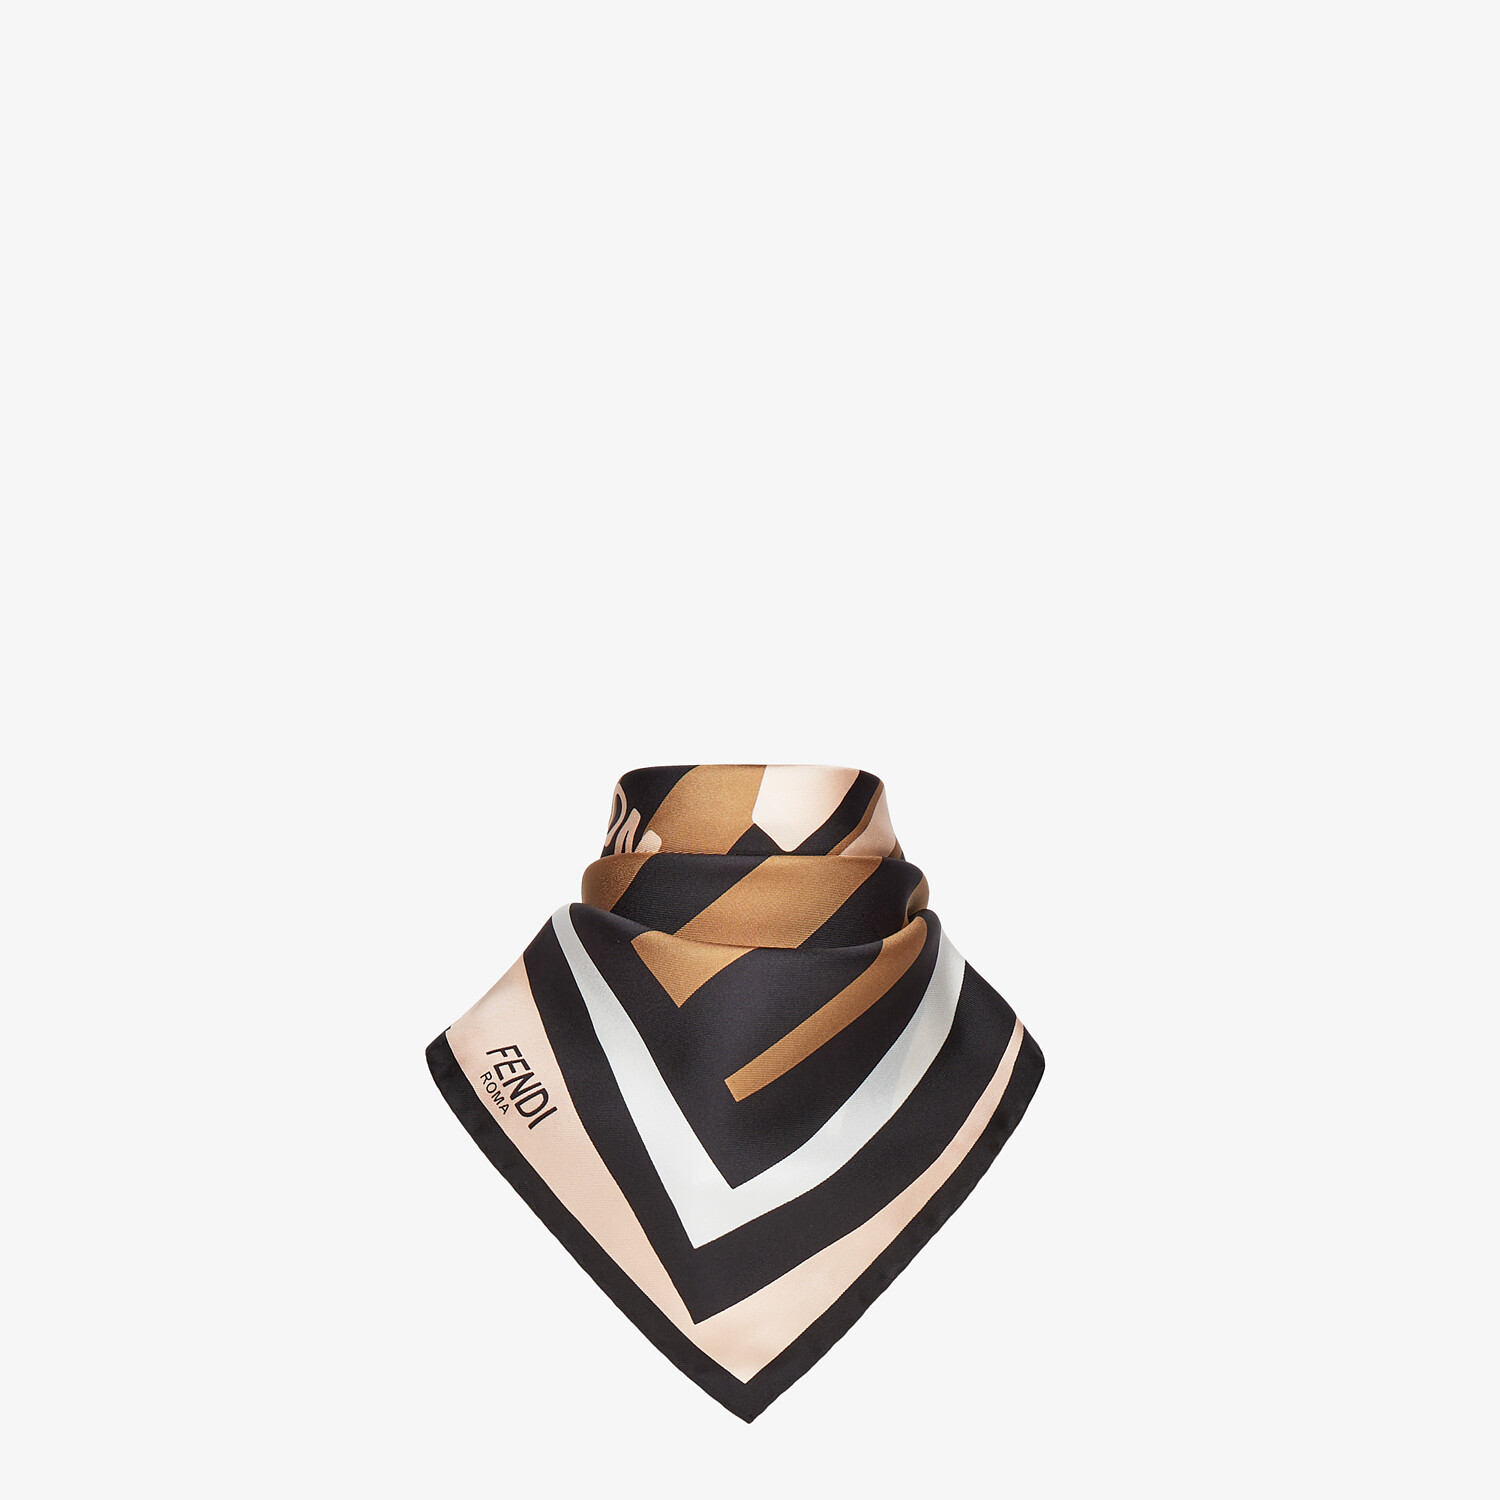 FENDI PEQUIN FOULARD - Multicolor silk foulard - view 2 detail